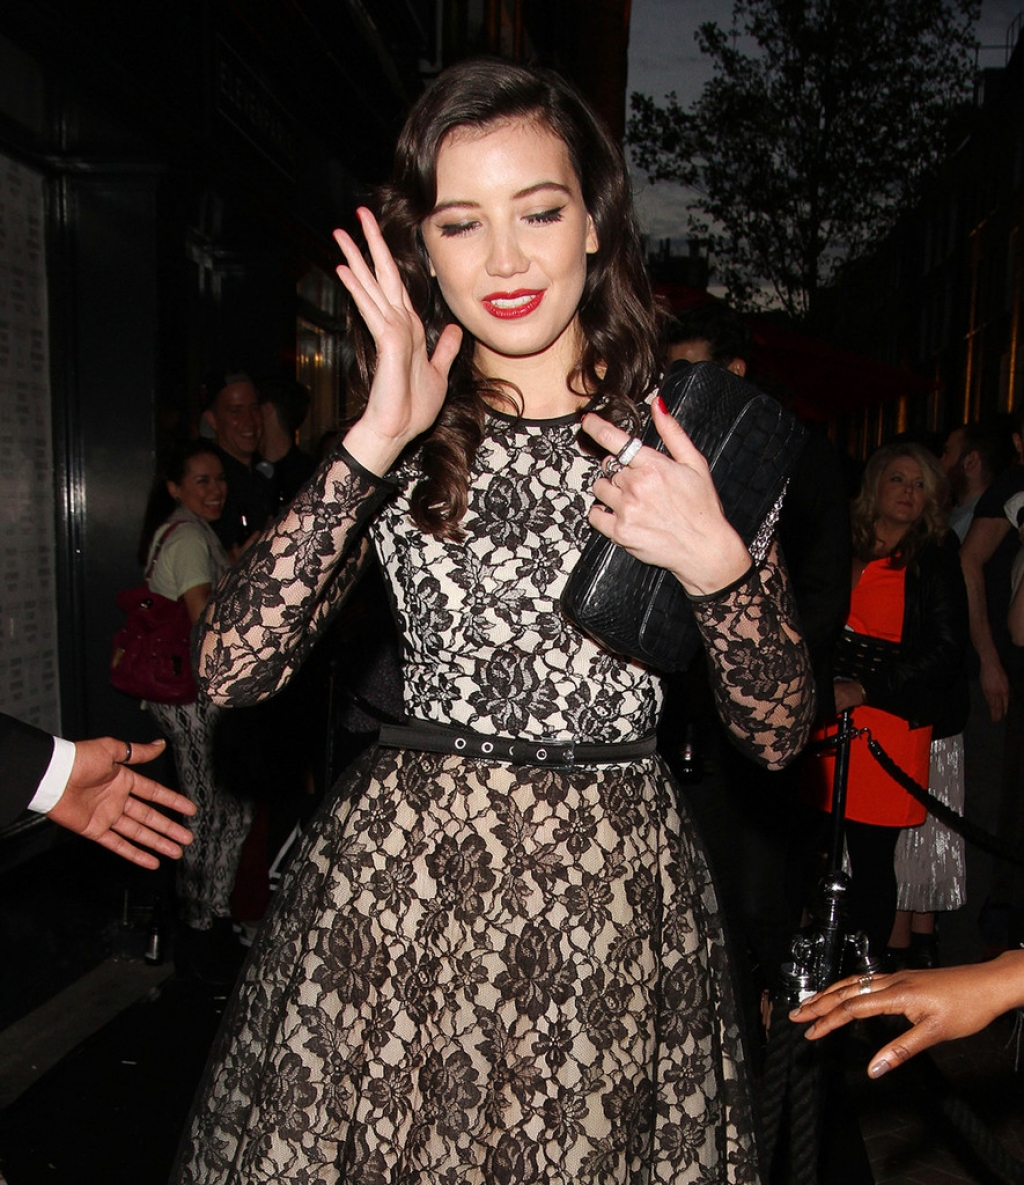 Daisy Lowe at the Eleven Paris Store Launch 43182